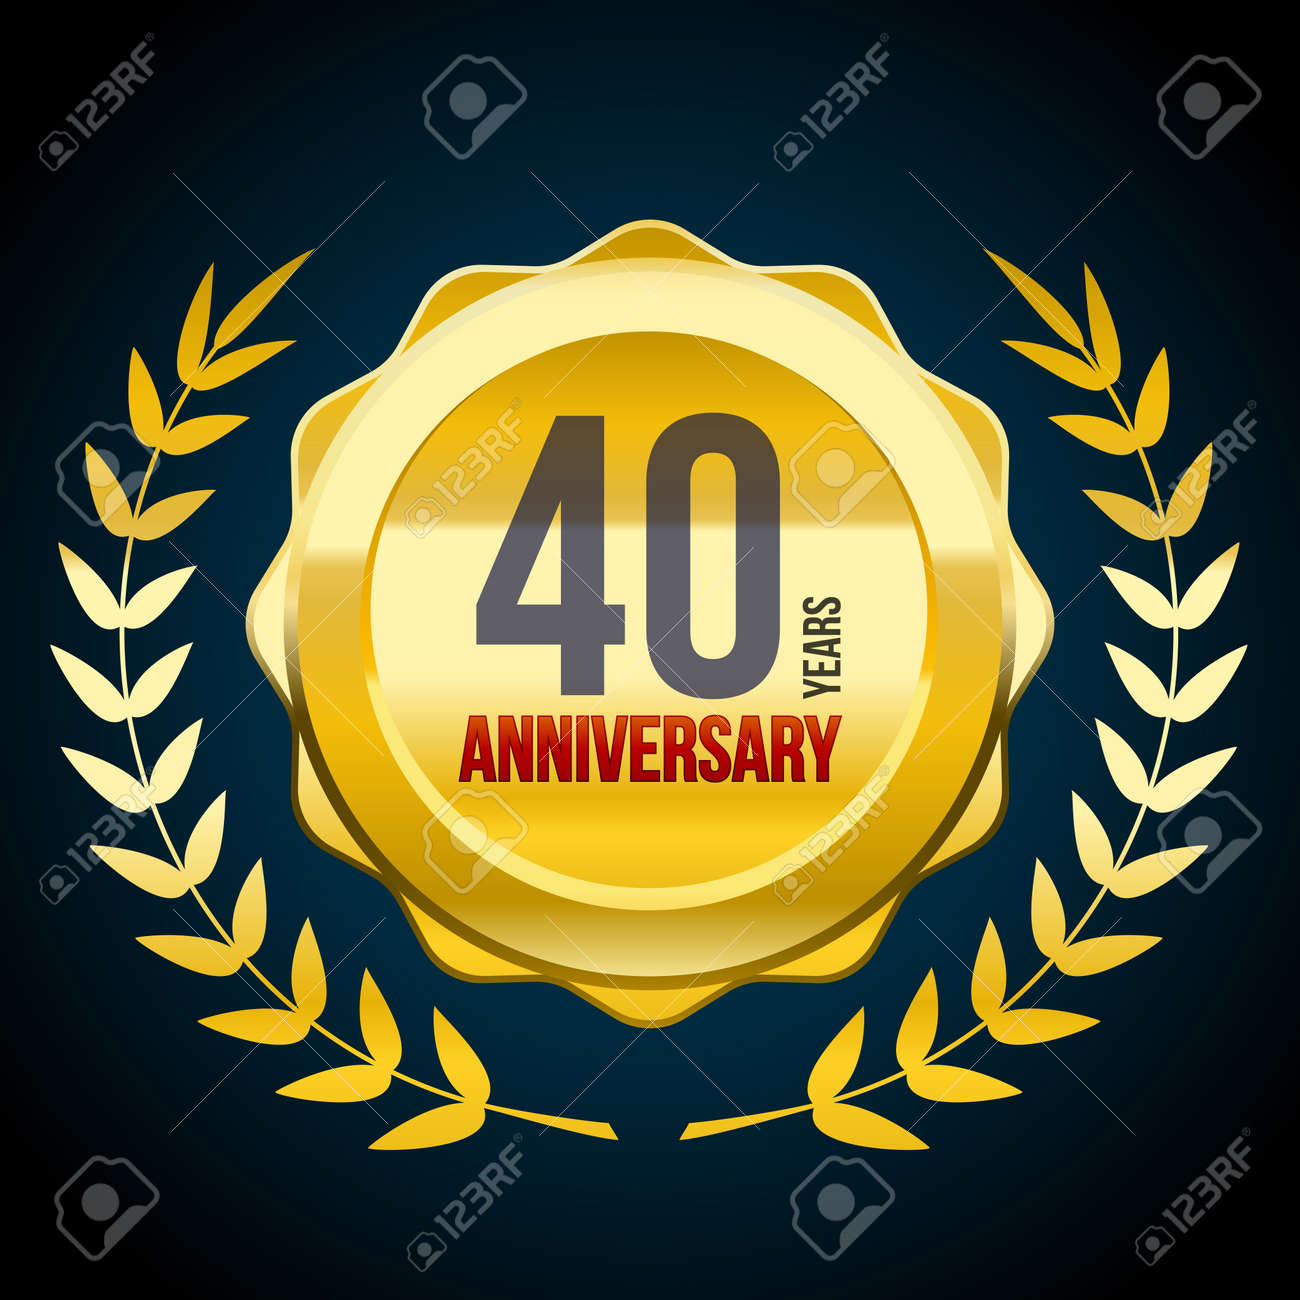 40 Years anniversary Gold and Red badge logo. Vector illustration eps10 - 118574647